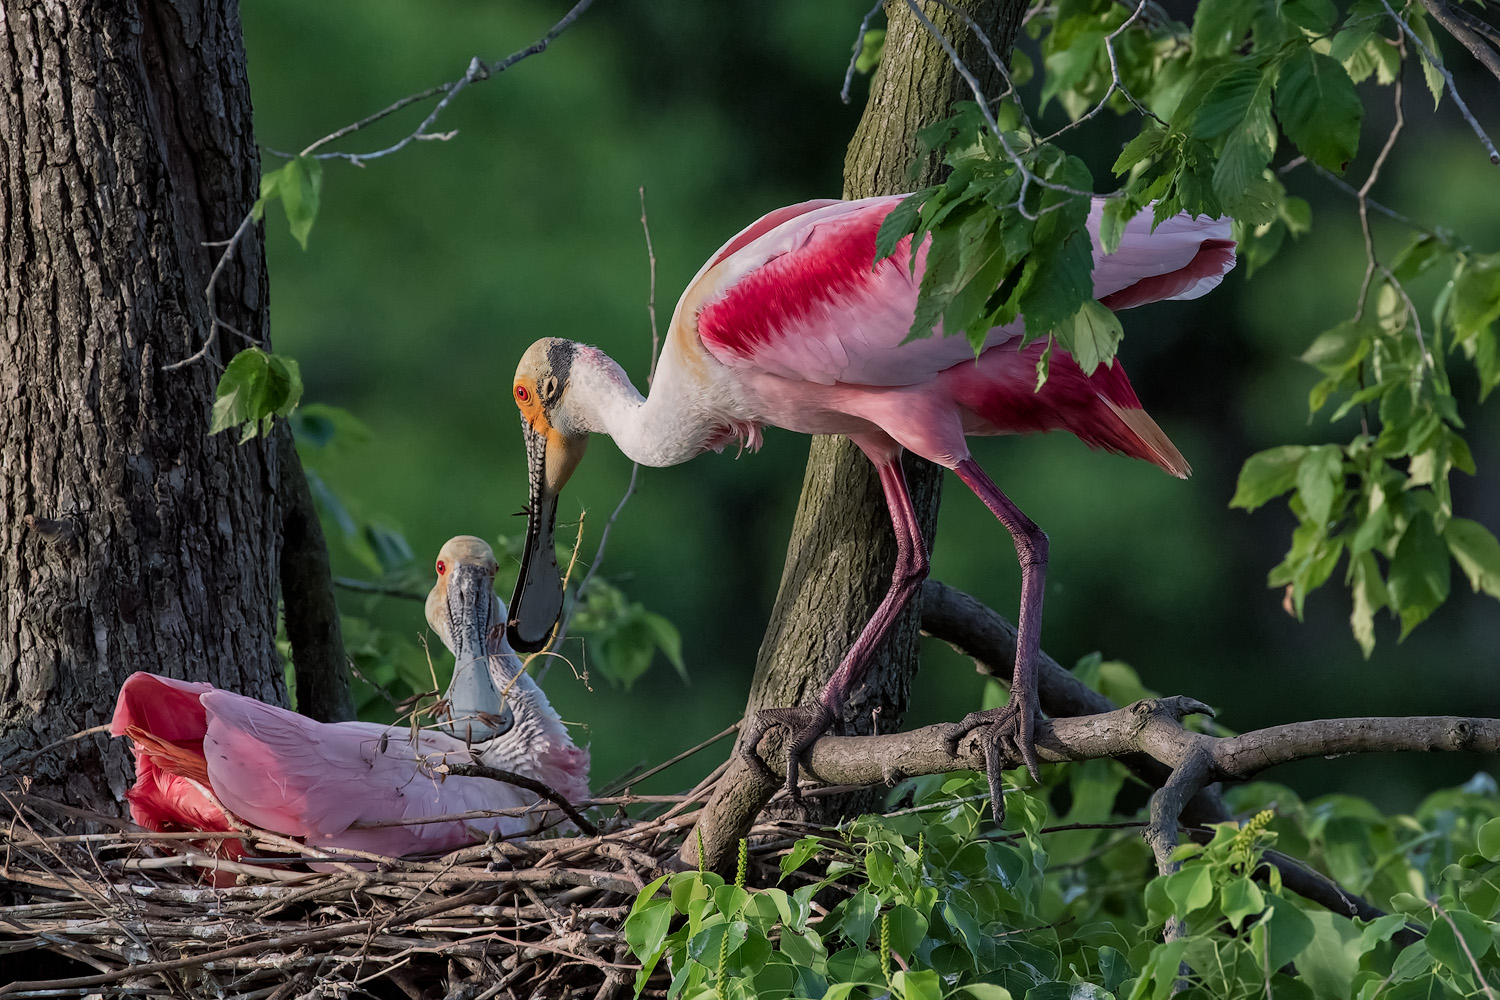 Roseate Spoonbill Passing Nesting Material to his Mate–Rip's Rip's Rookery